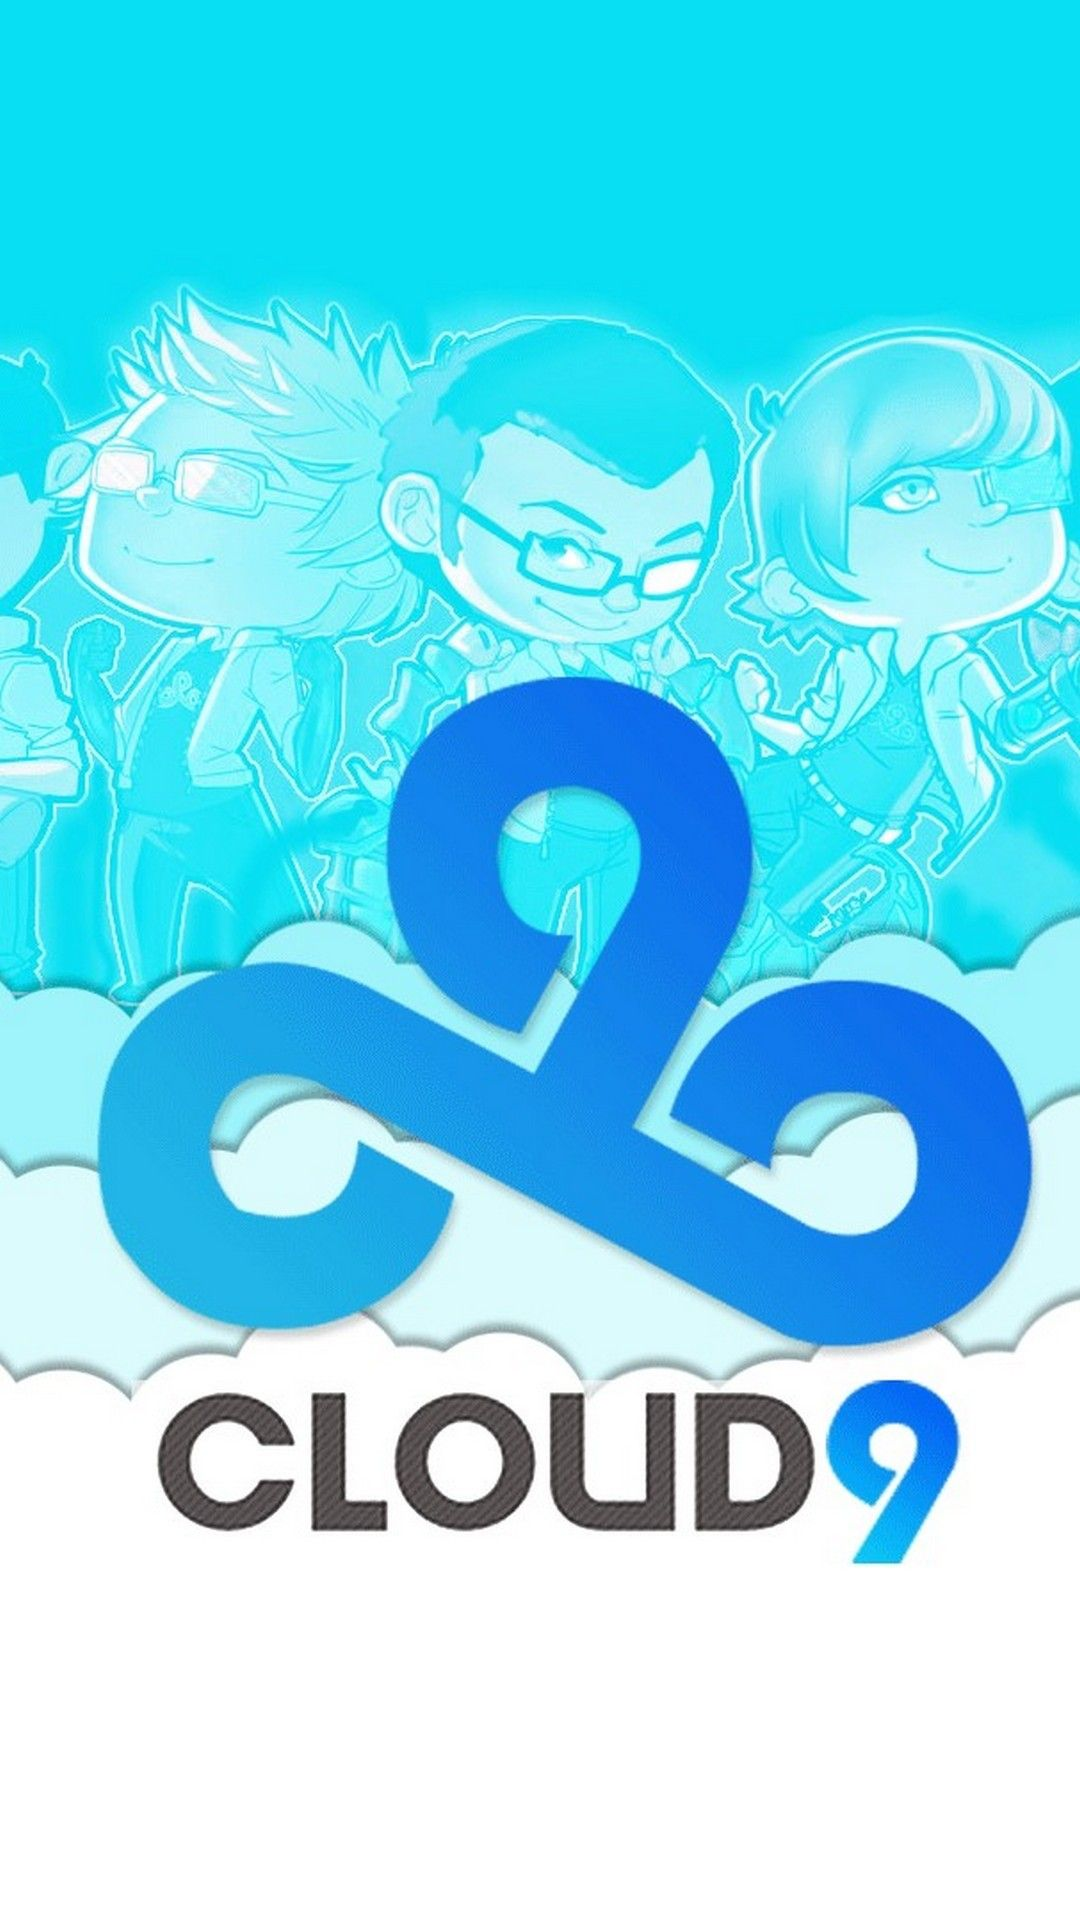 PhoneWallpaper Cloud 9 Games Android Wallpaper Check more